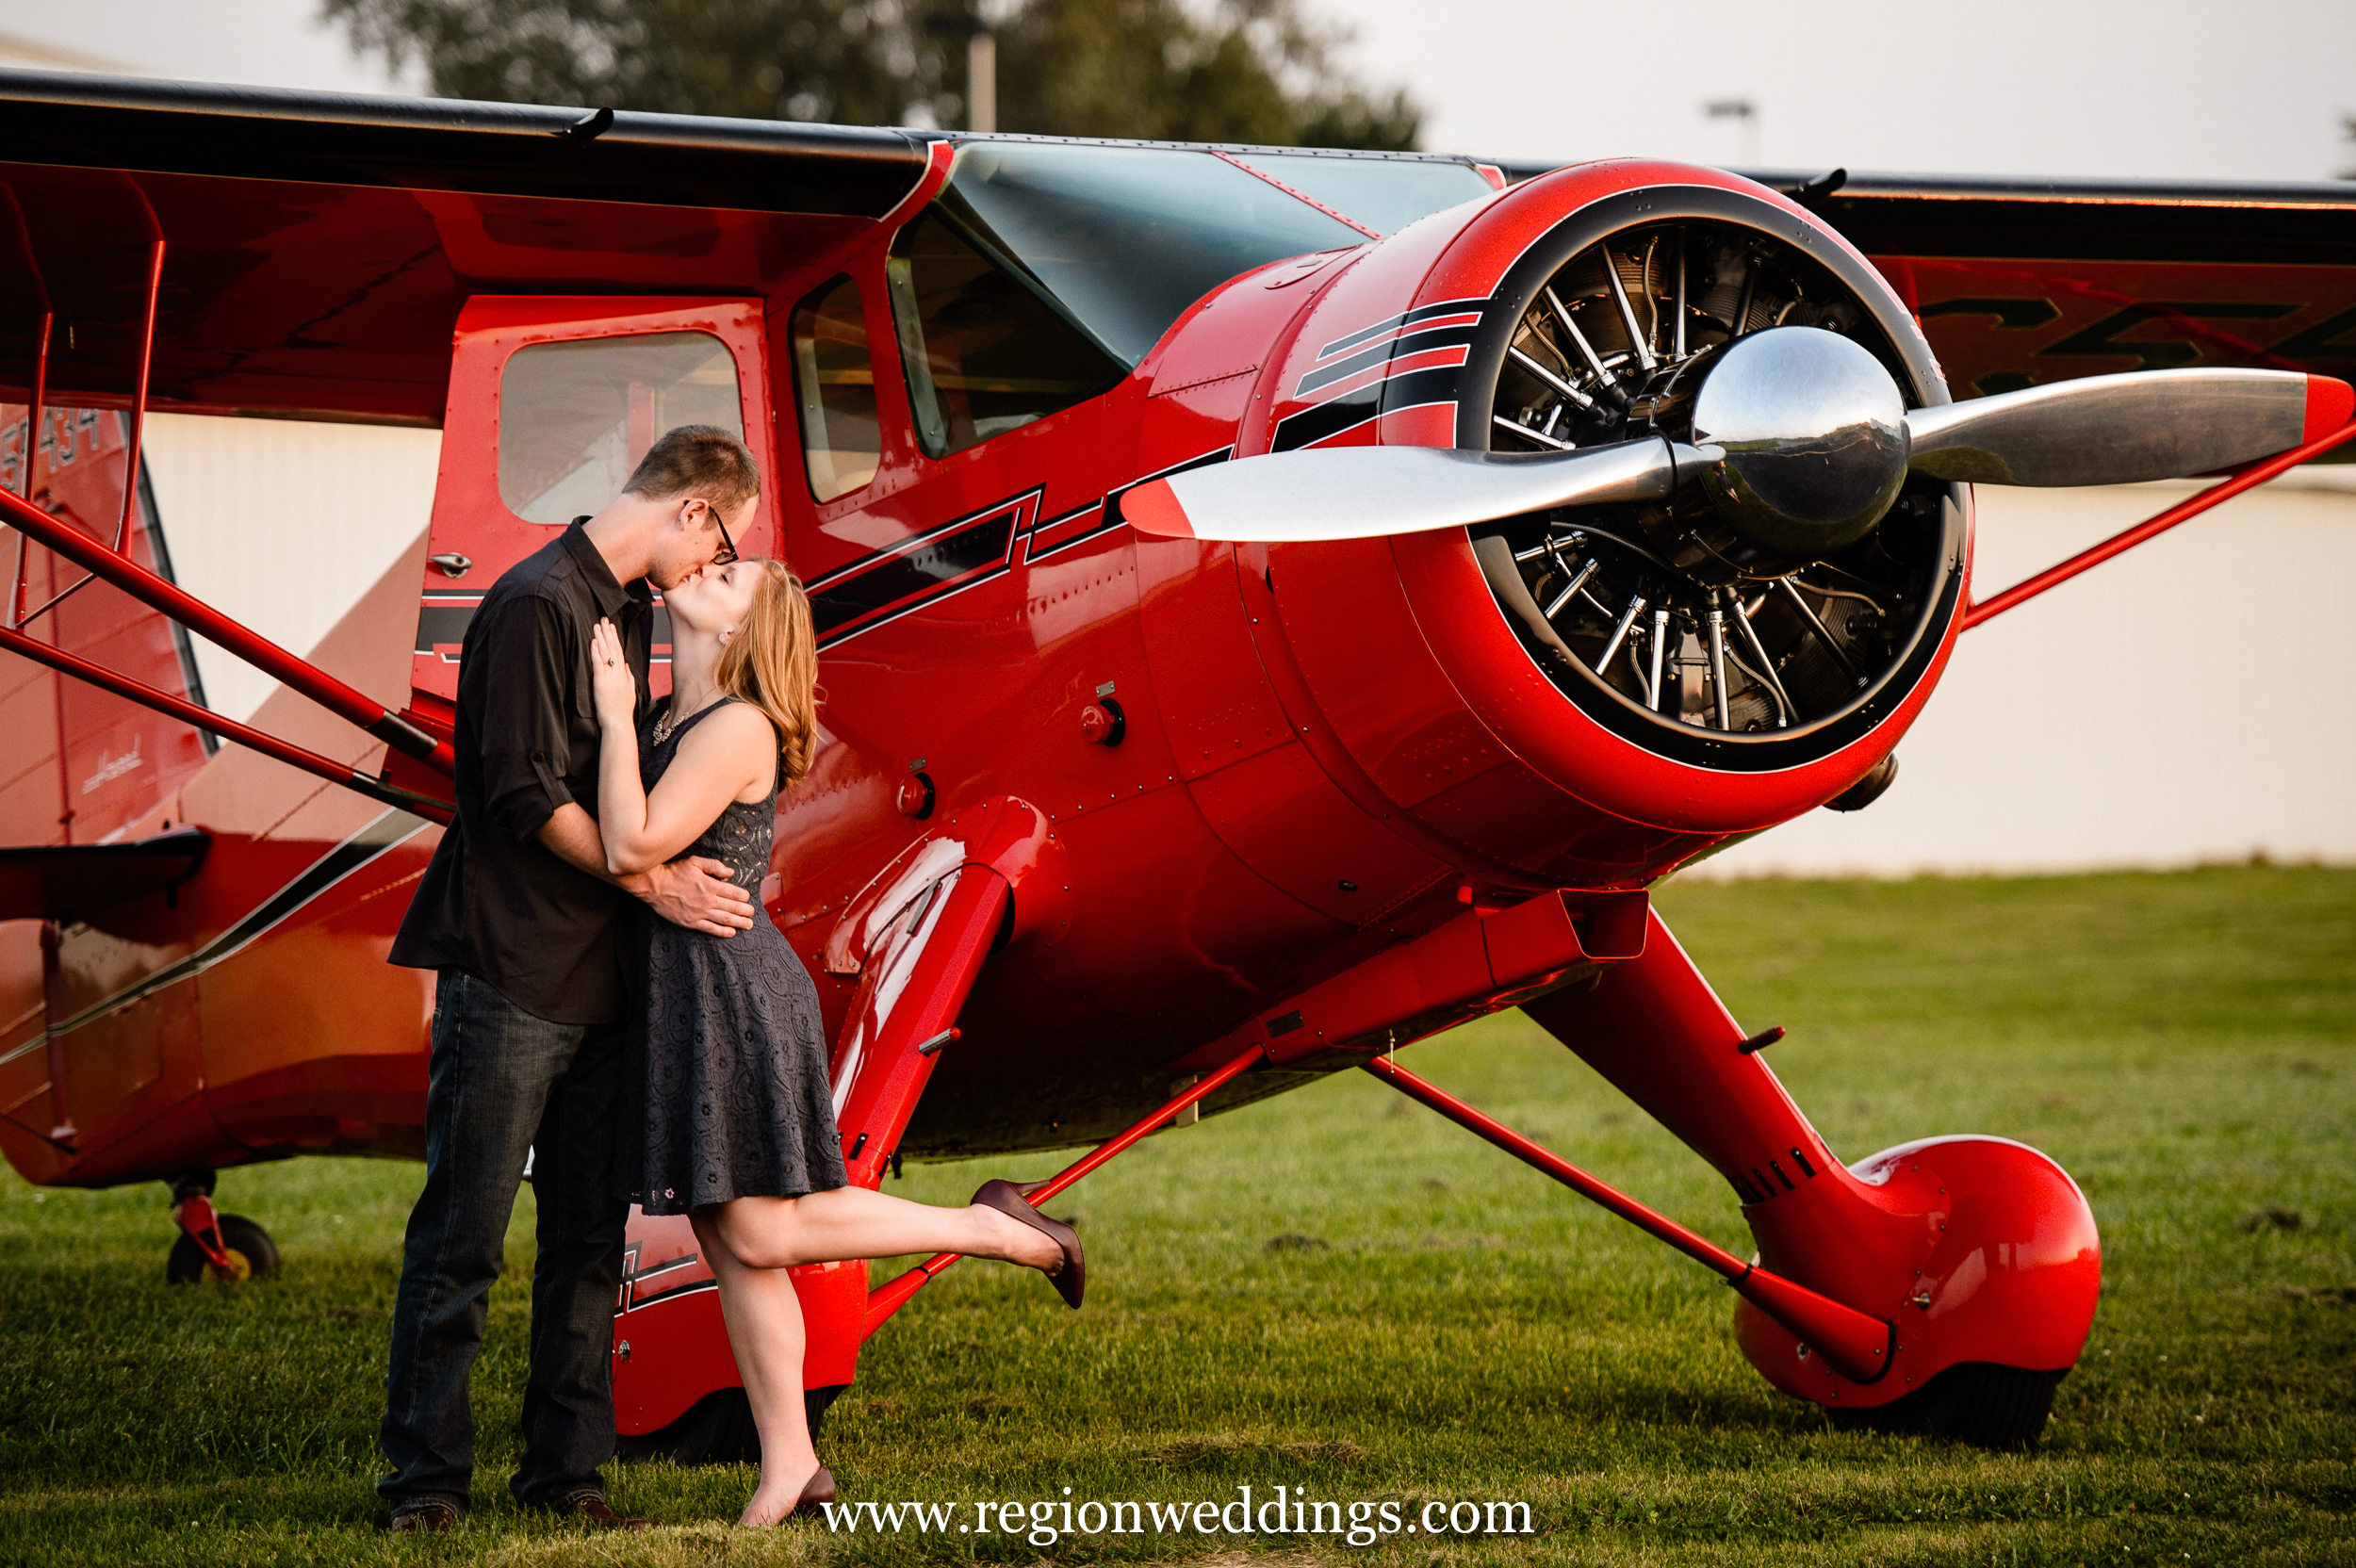 A couple shares a kiss next to a vintage airplane.